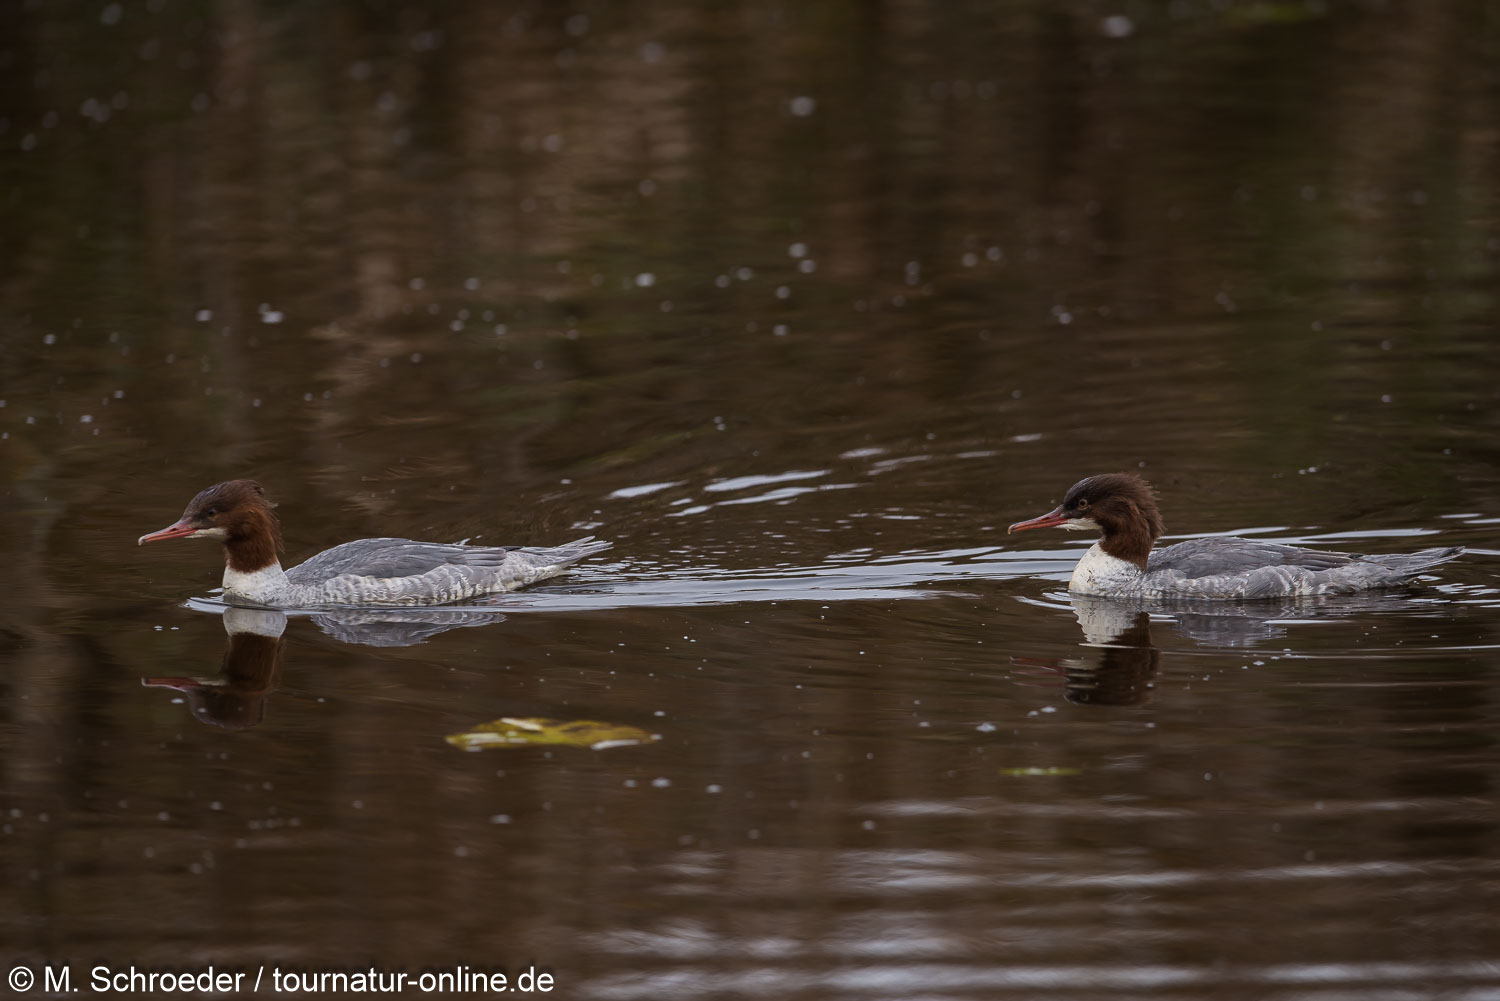 Gänsesäger - common merganser or goosander (Mergus merganser)